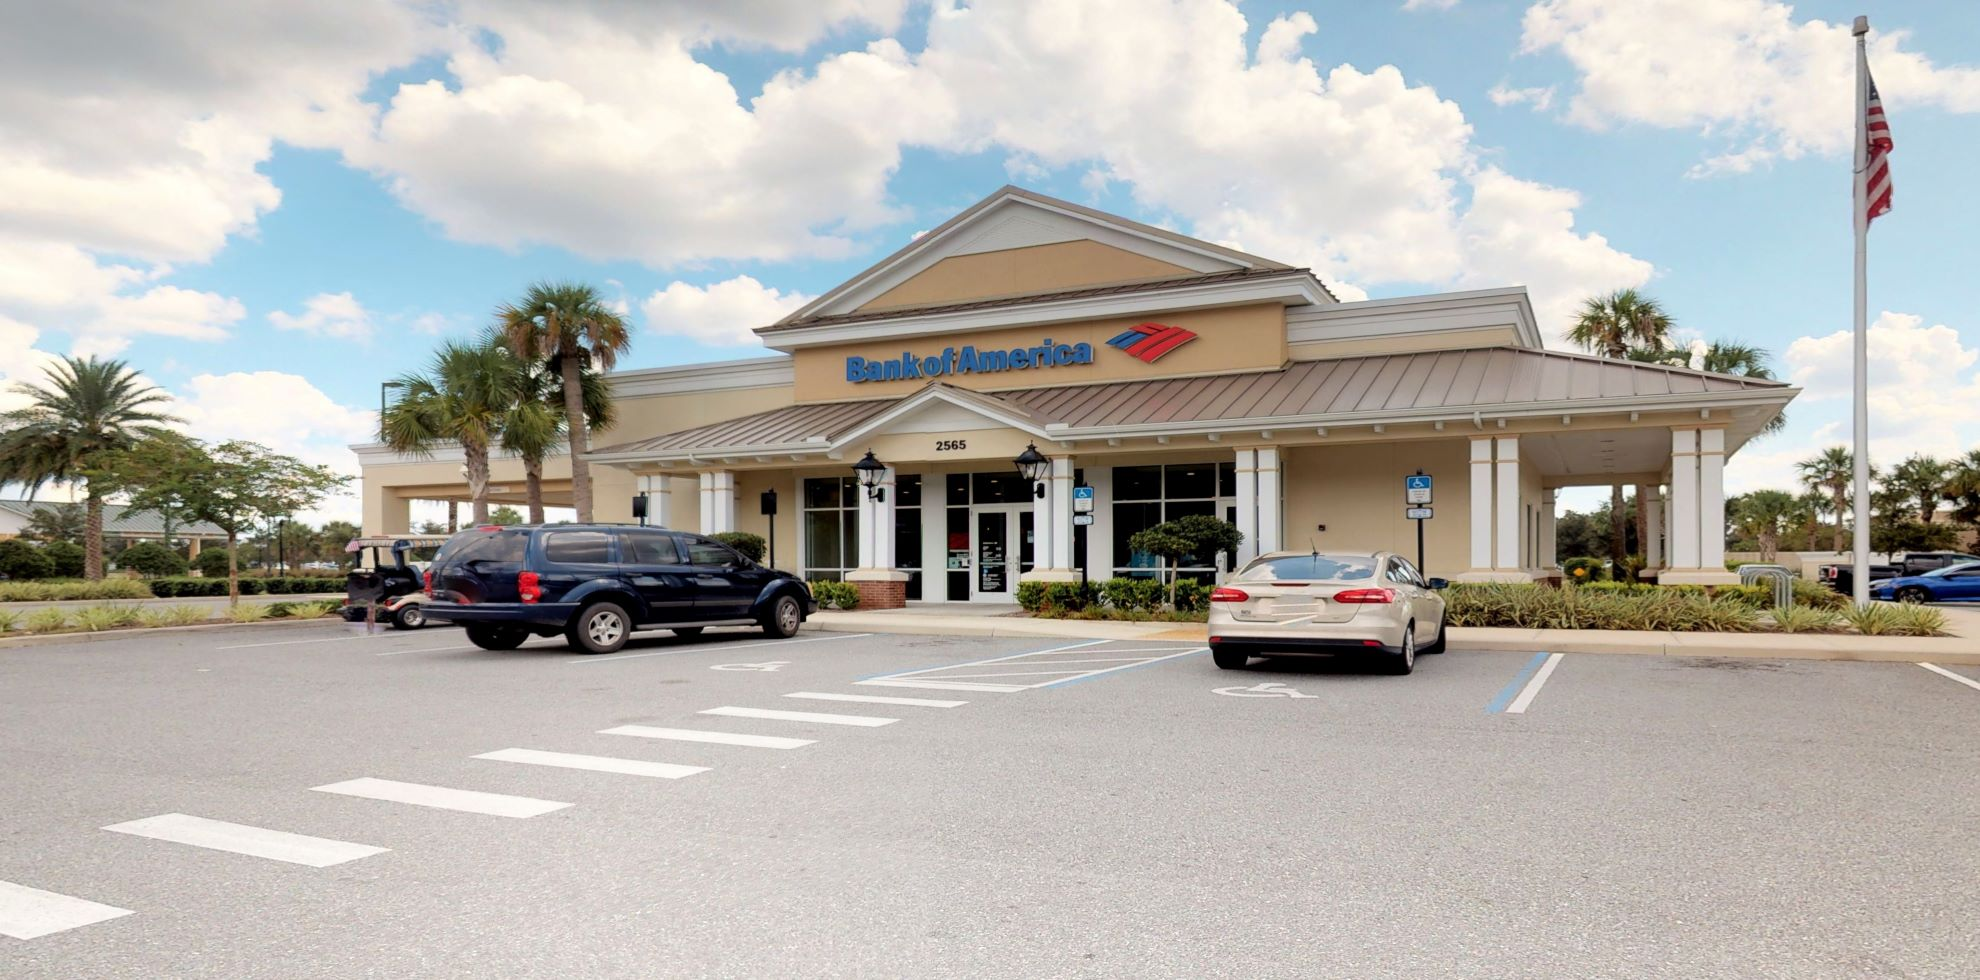 Bank of America financial center with drive-thru ATM   2565 Burnsed Blvd, The Villages, FL 32163